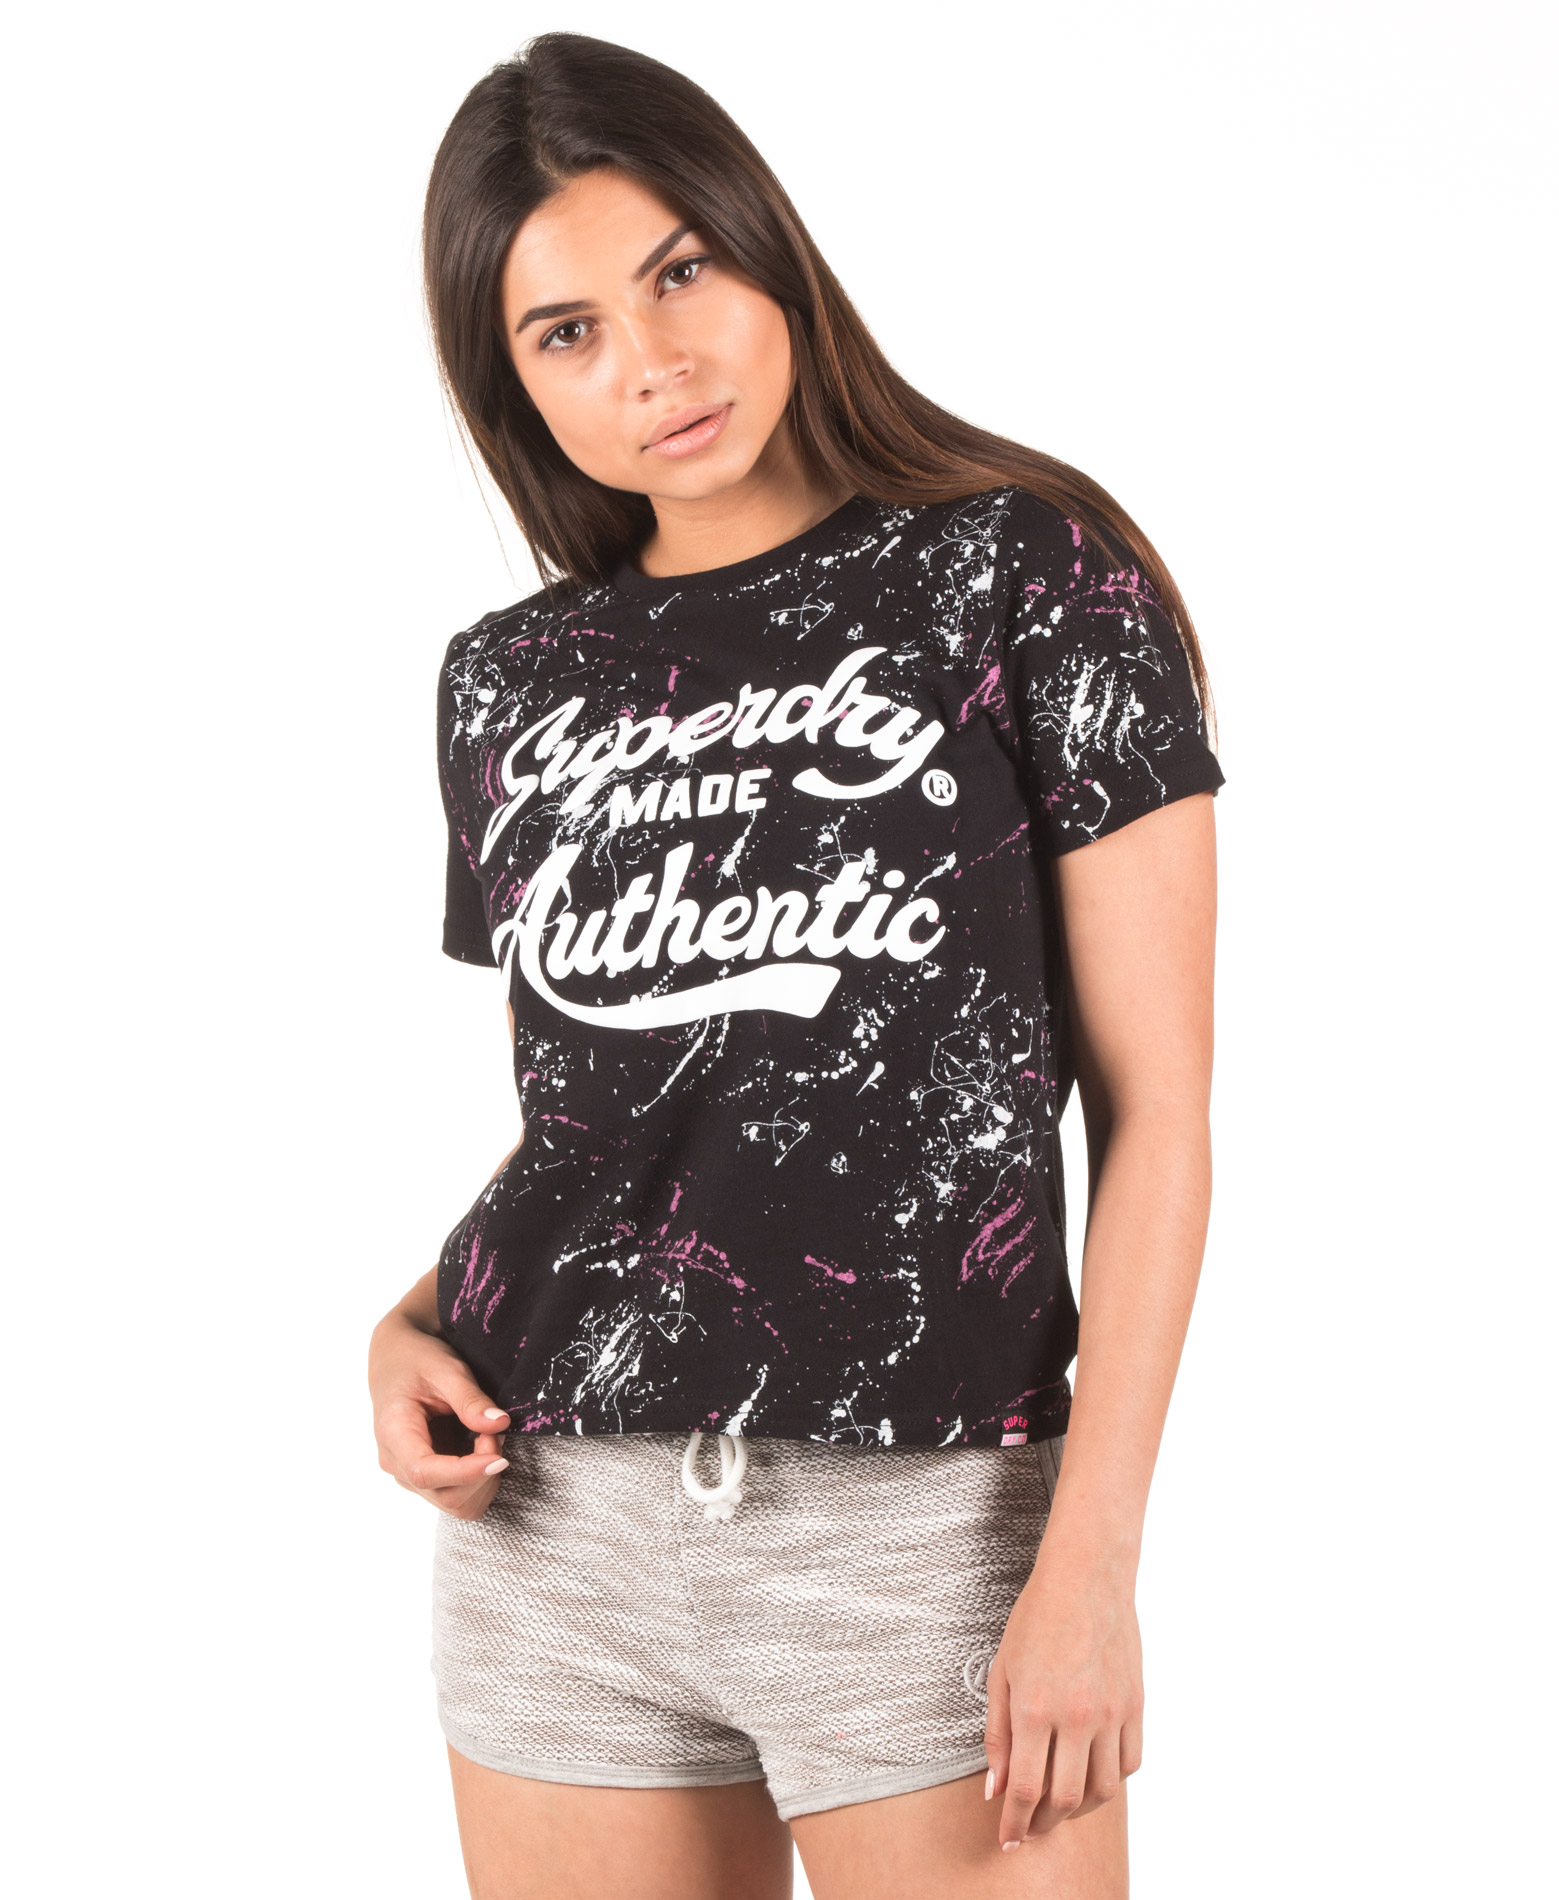 bb8dae9376dd SUPERDRY D2 MADE AUTHENTIC AOP BOXY TEE G10003SQ-MO2 Μαύρο - Glami.gr